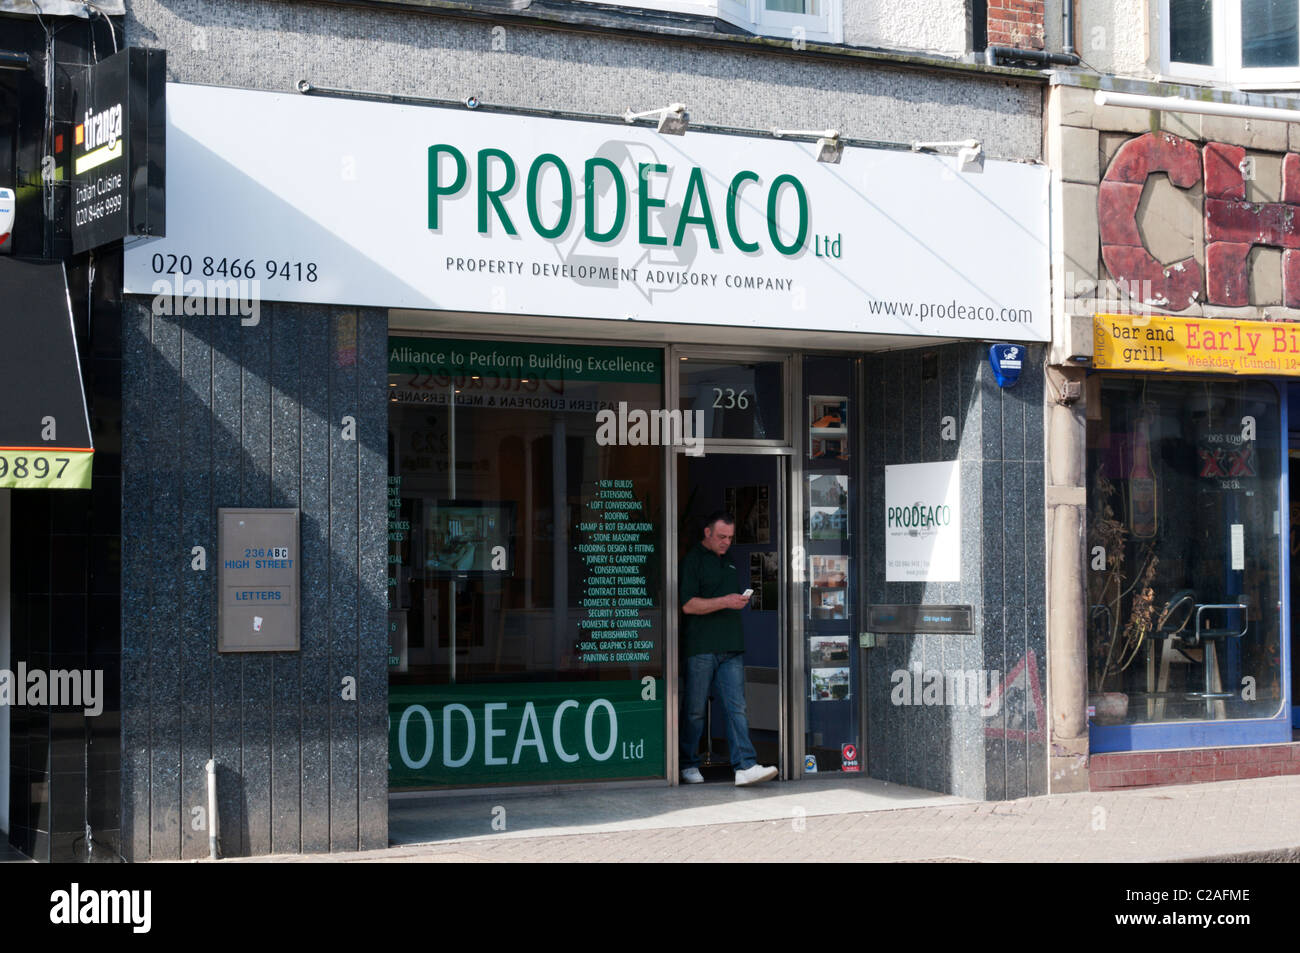 PRODEACO property advice centre in Bromley, South London. - Stock Image